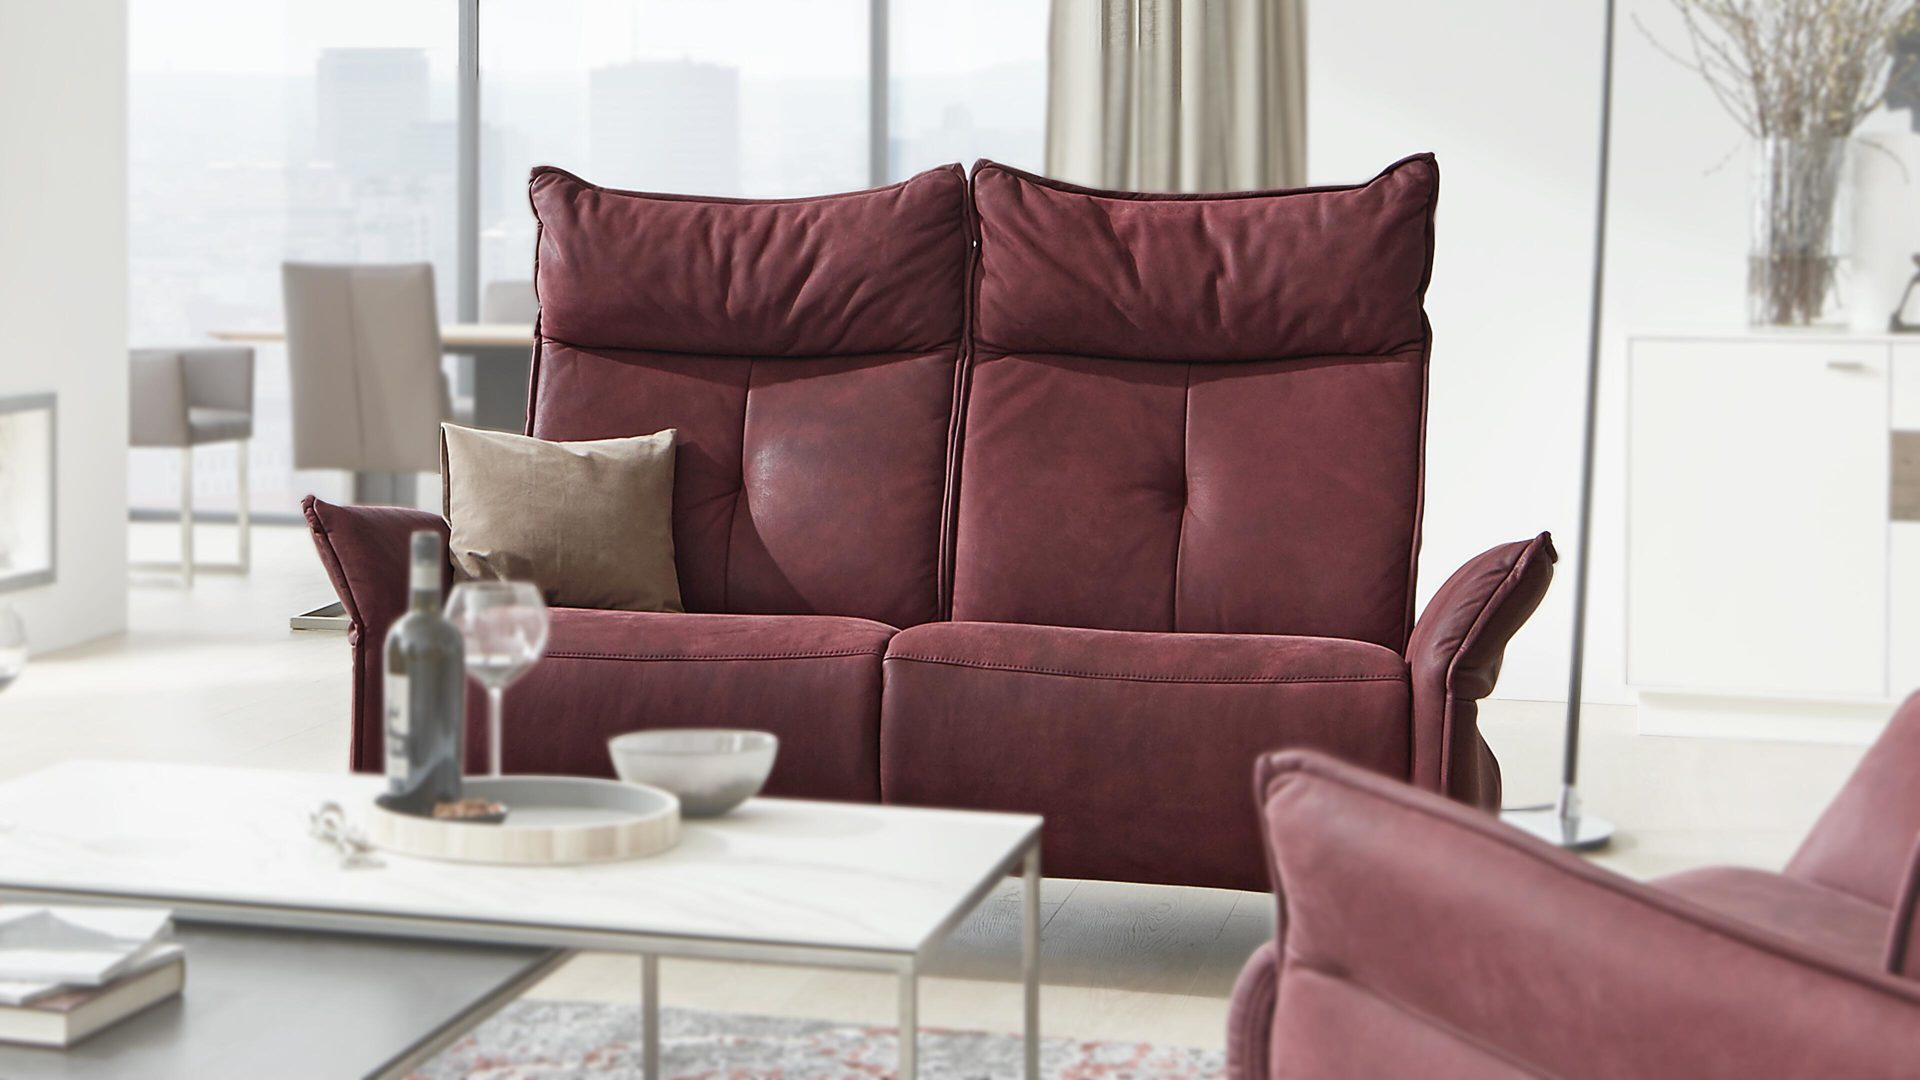 2,5-Sitzer Himolla | il aus Leder in Rot Interliving Sofa Serie 4200 – 2,5-Sitzer als Couch merlotfarbenes LongLife-Leder – Länge ca. 182 cm